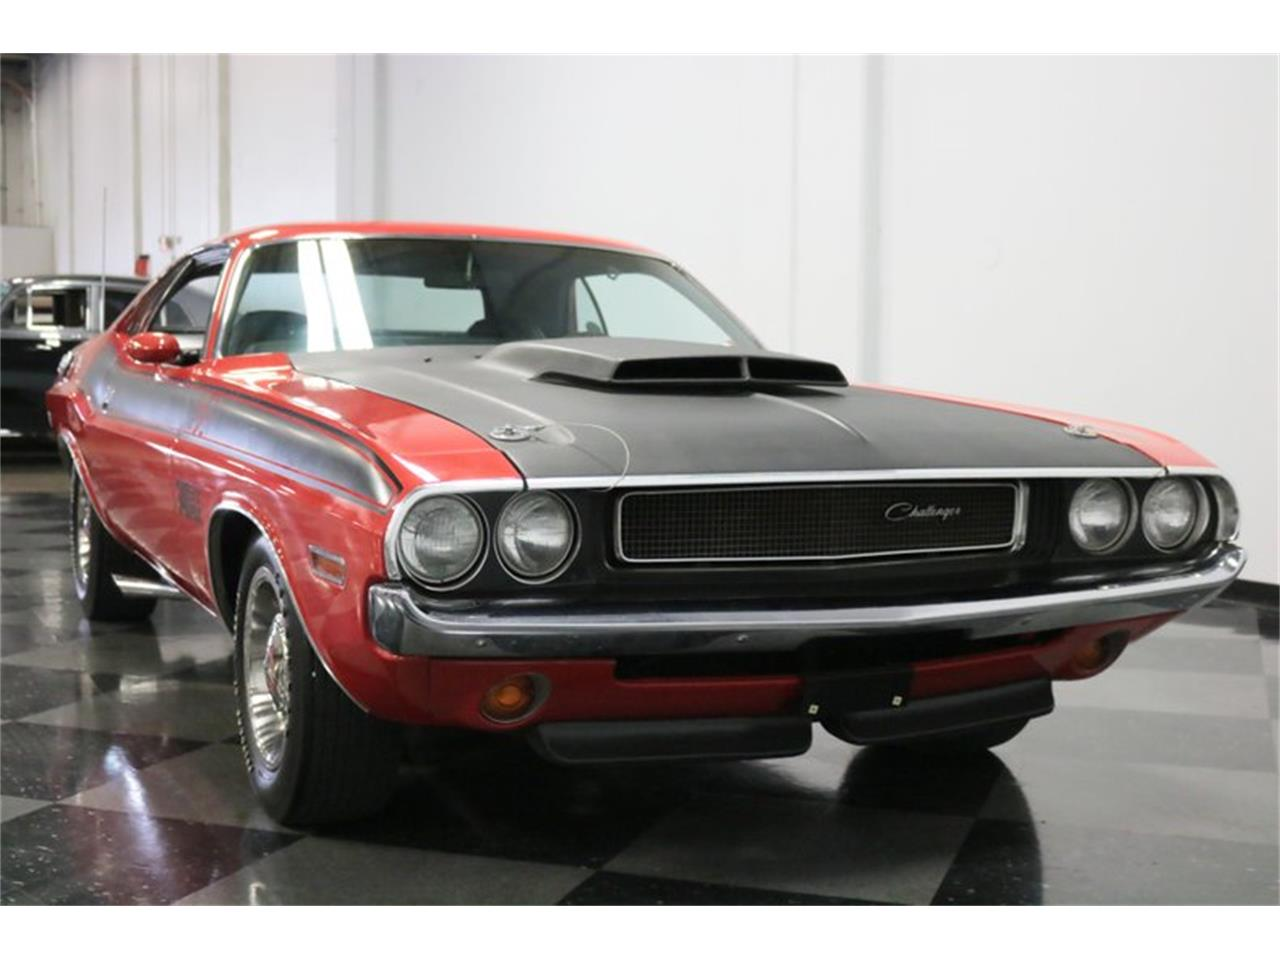 Large Picture of '70 Challenger T/A located in Texas Offered by Streetside Classics - Dallas / Fort Worth - N7CT